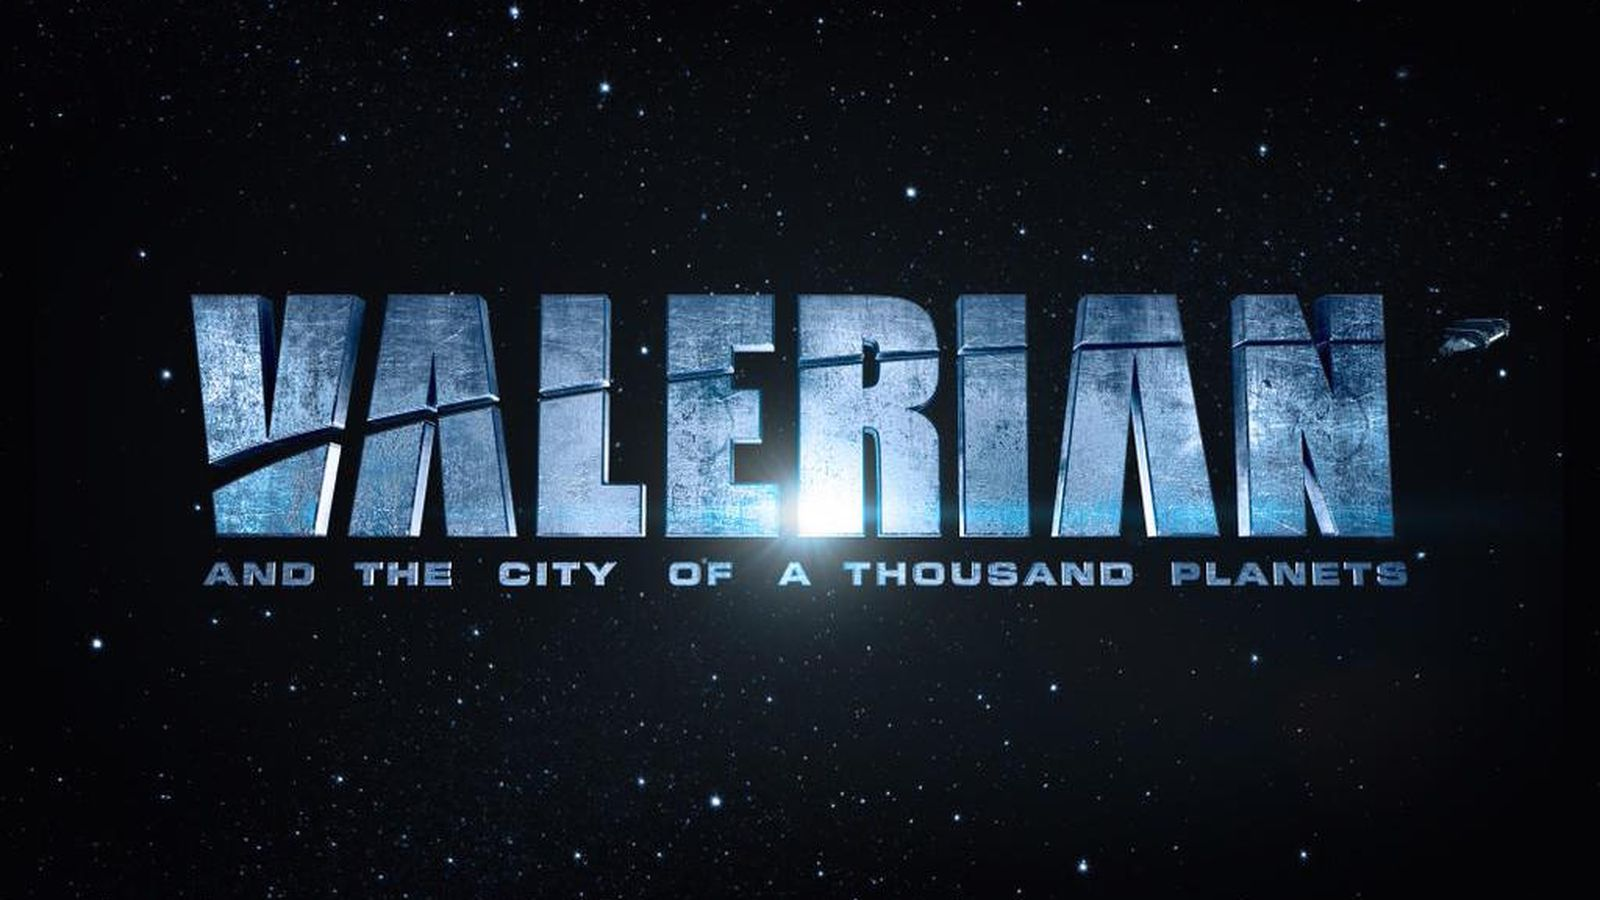 Movie News: New Valerian Character Posters Released